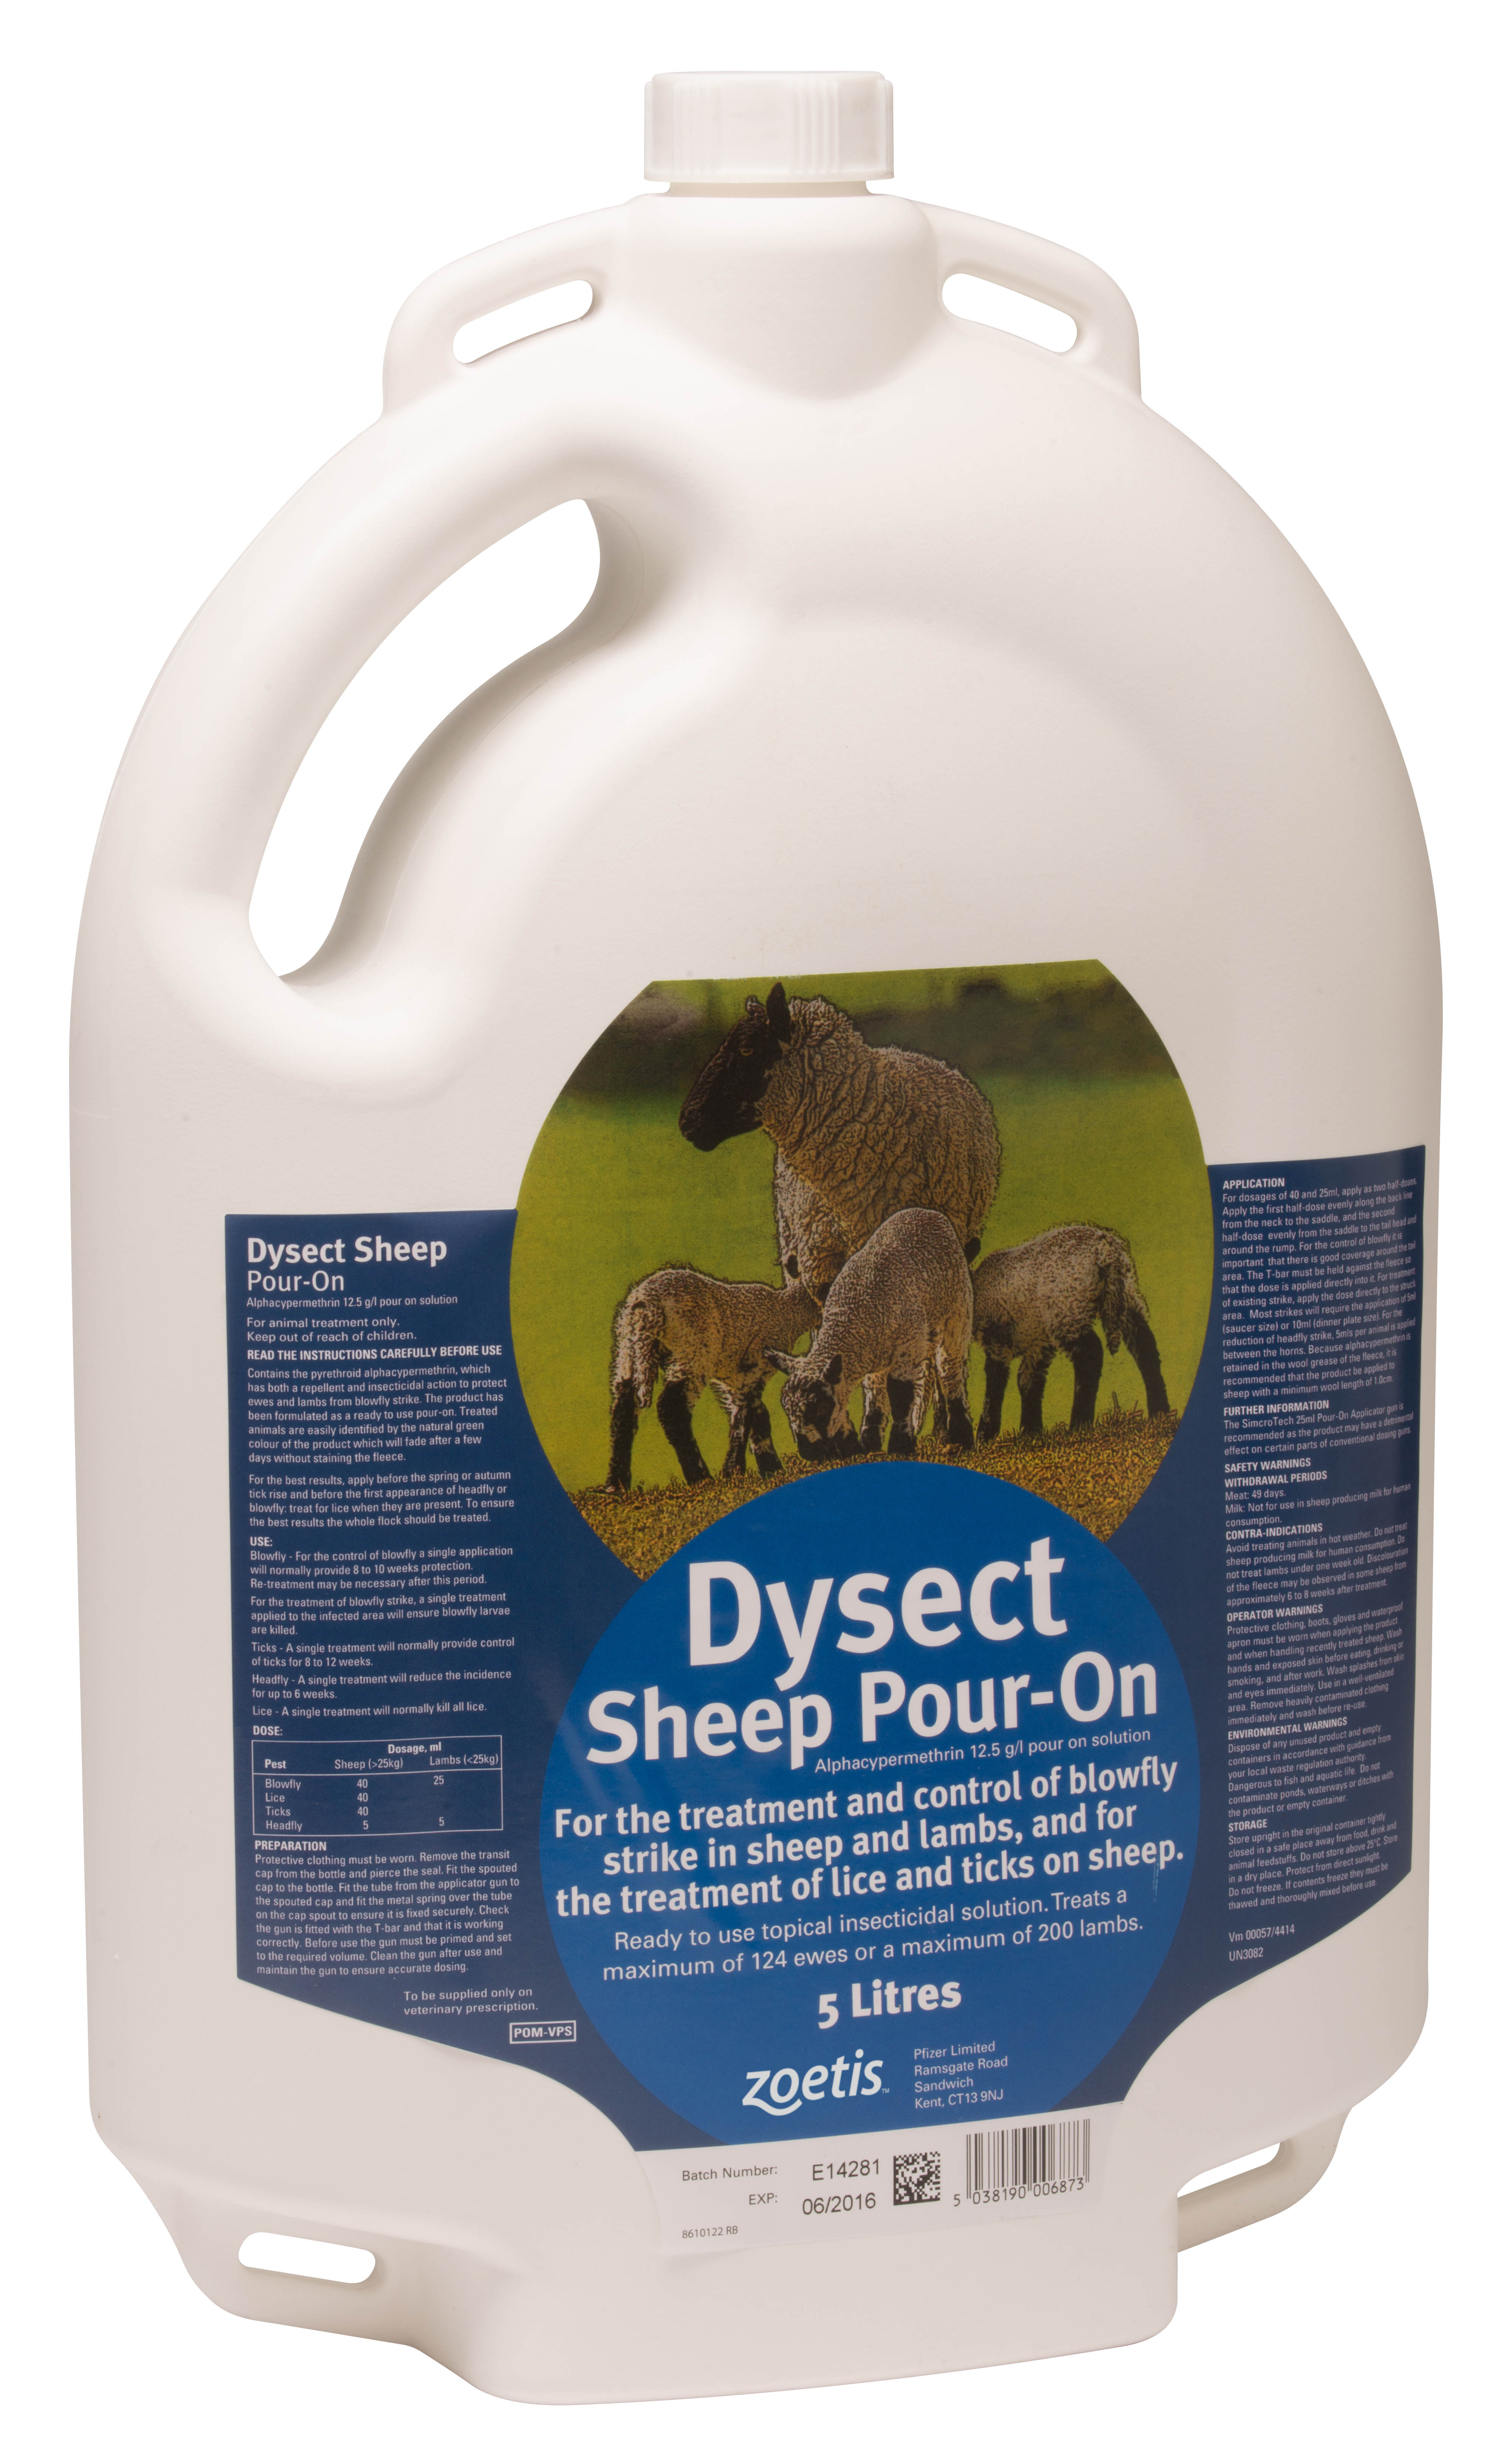 Sheep Lice: DYSECT